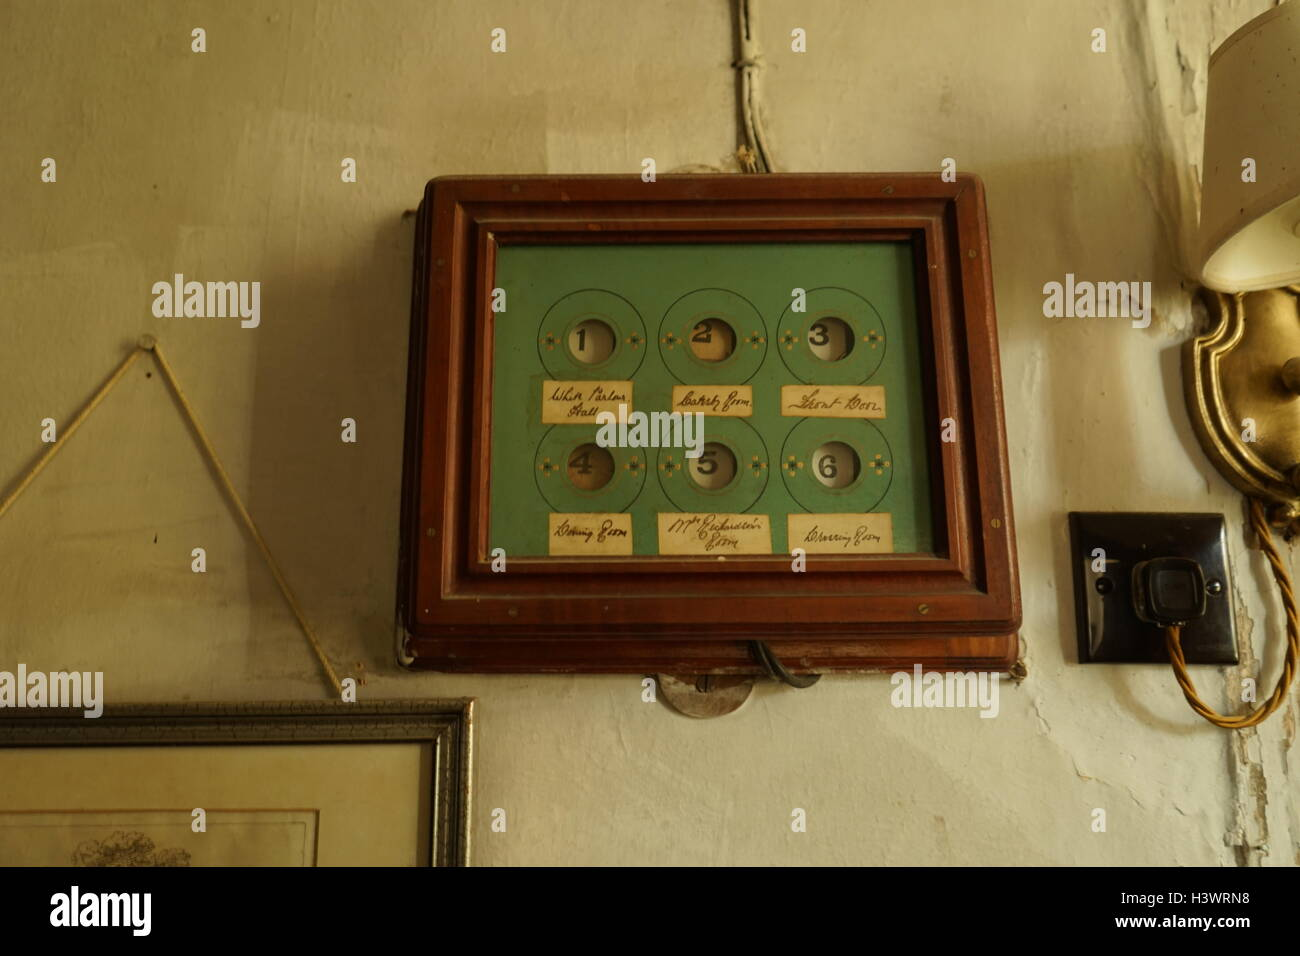 Victorian bell panel for servants to answer calls - Stock Image